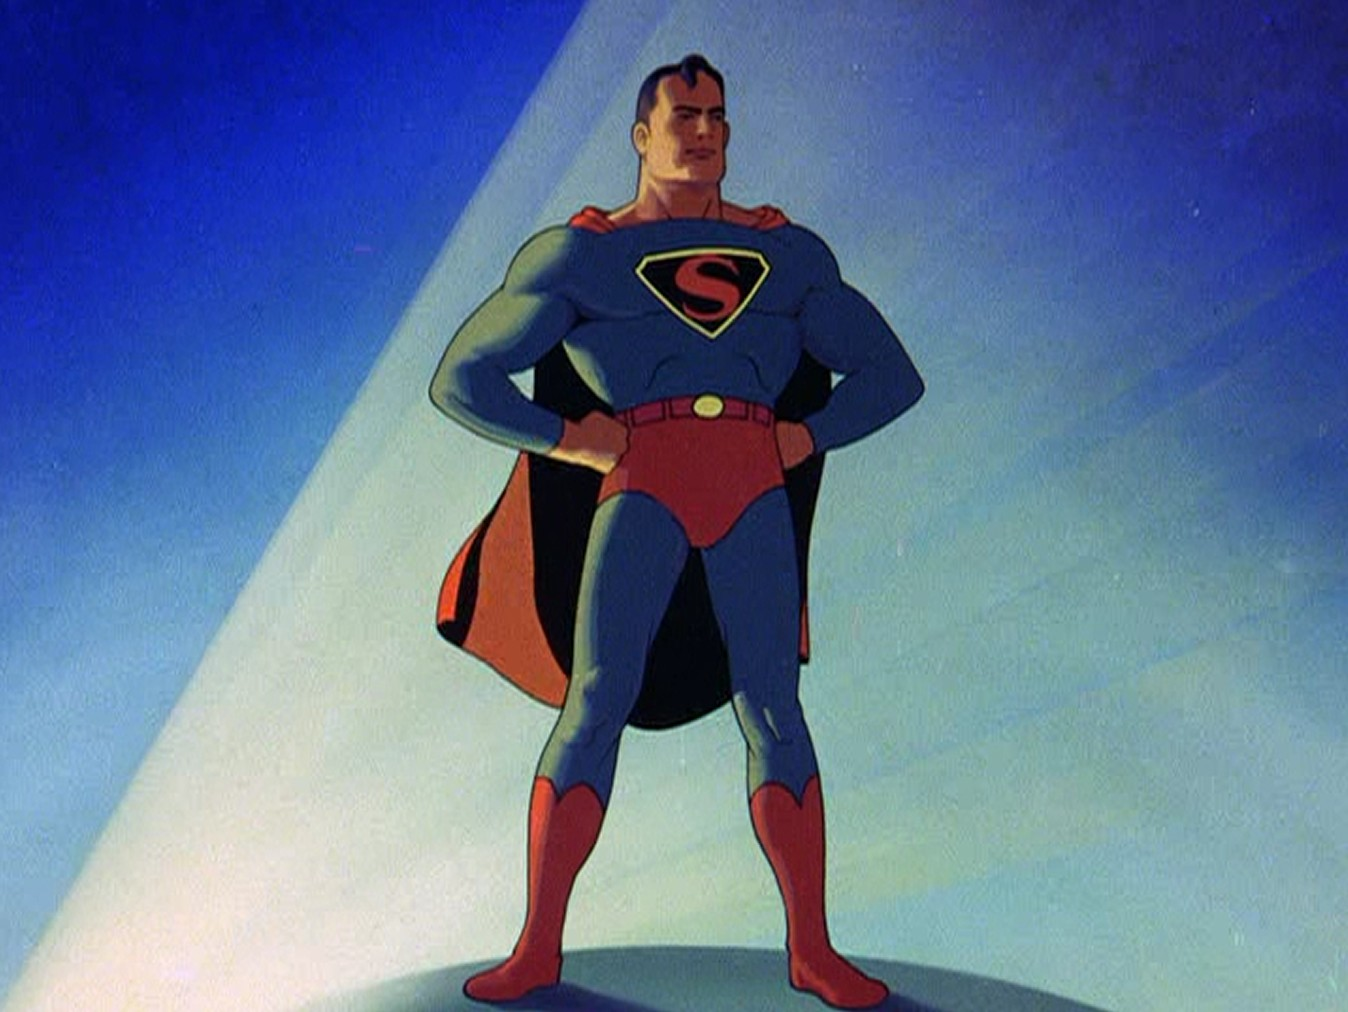 http://vignette2.wikia.nocookie.net/geosheas-lost-episodes/images/f/ff/Fleischer-superman.jpg/revision/latest?cb=20151006182504